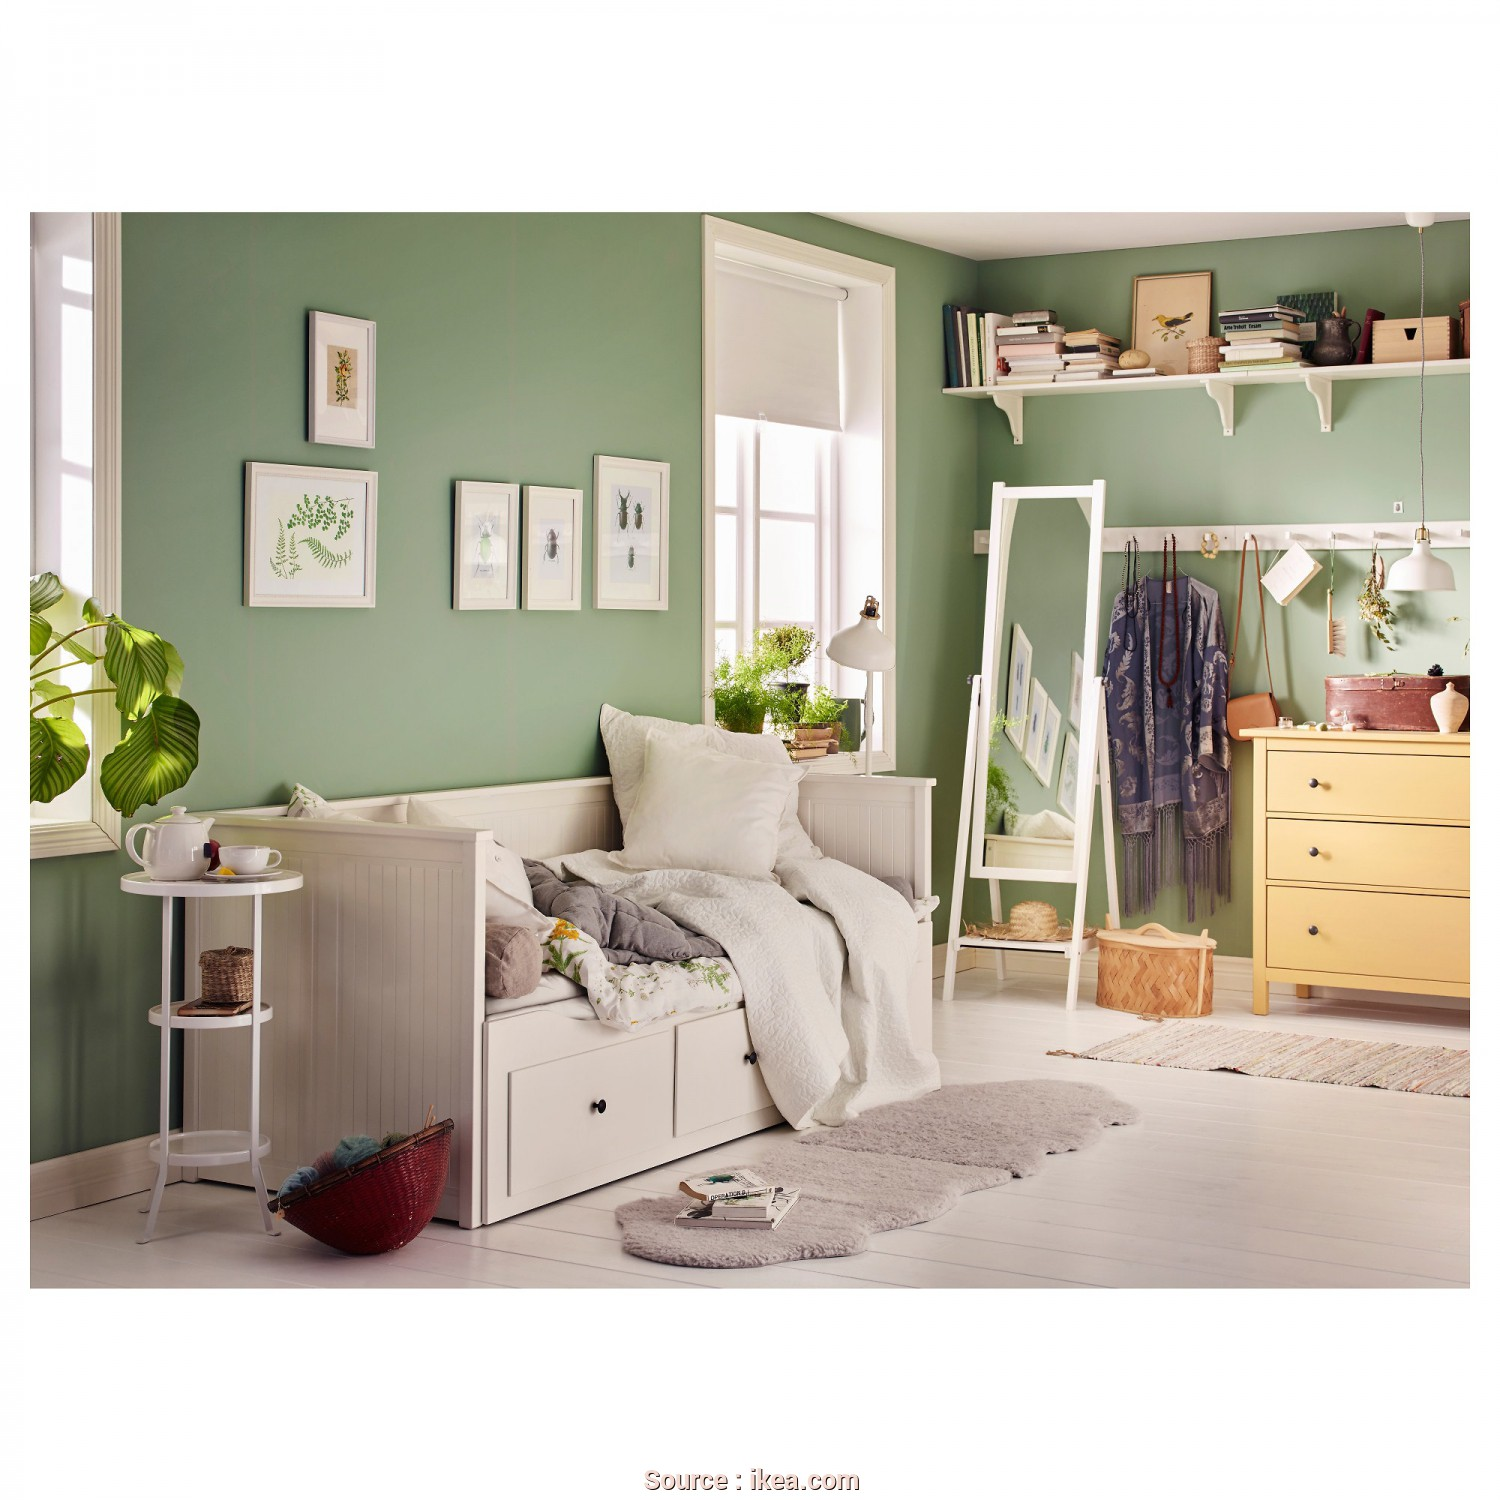 Letto Hemnes, Locale HEMNES Day-Bed, Drawers/2 Mattresses White/Malfors Medium Firm